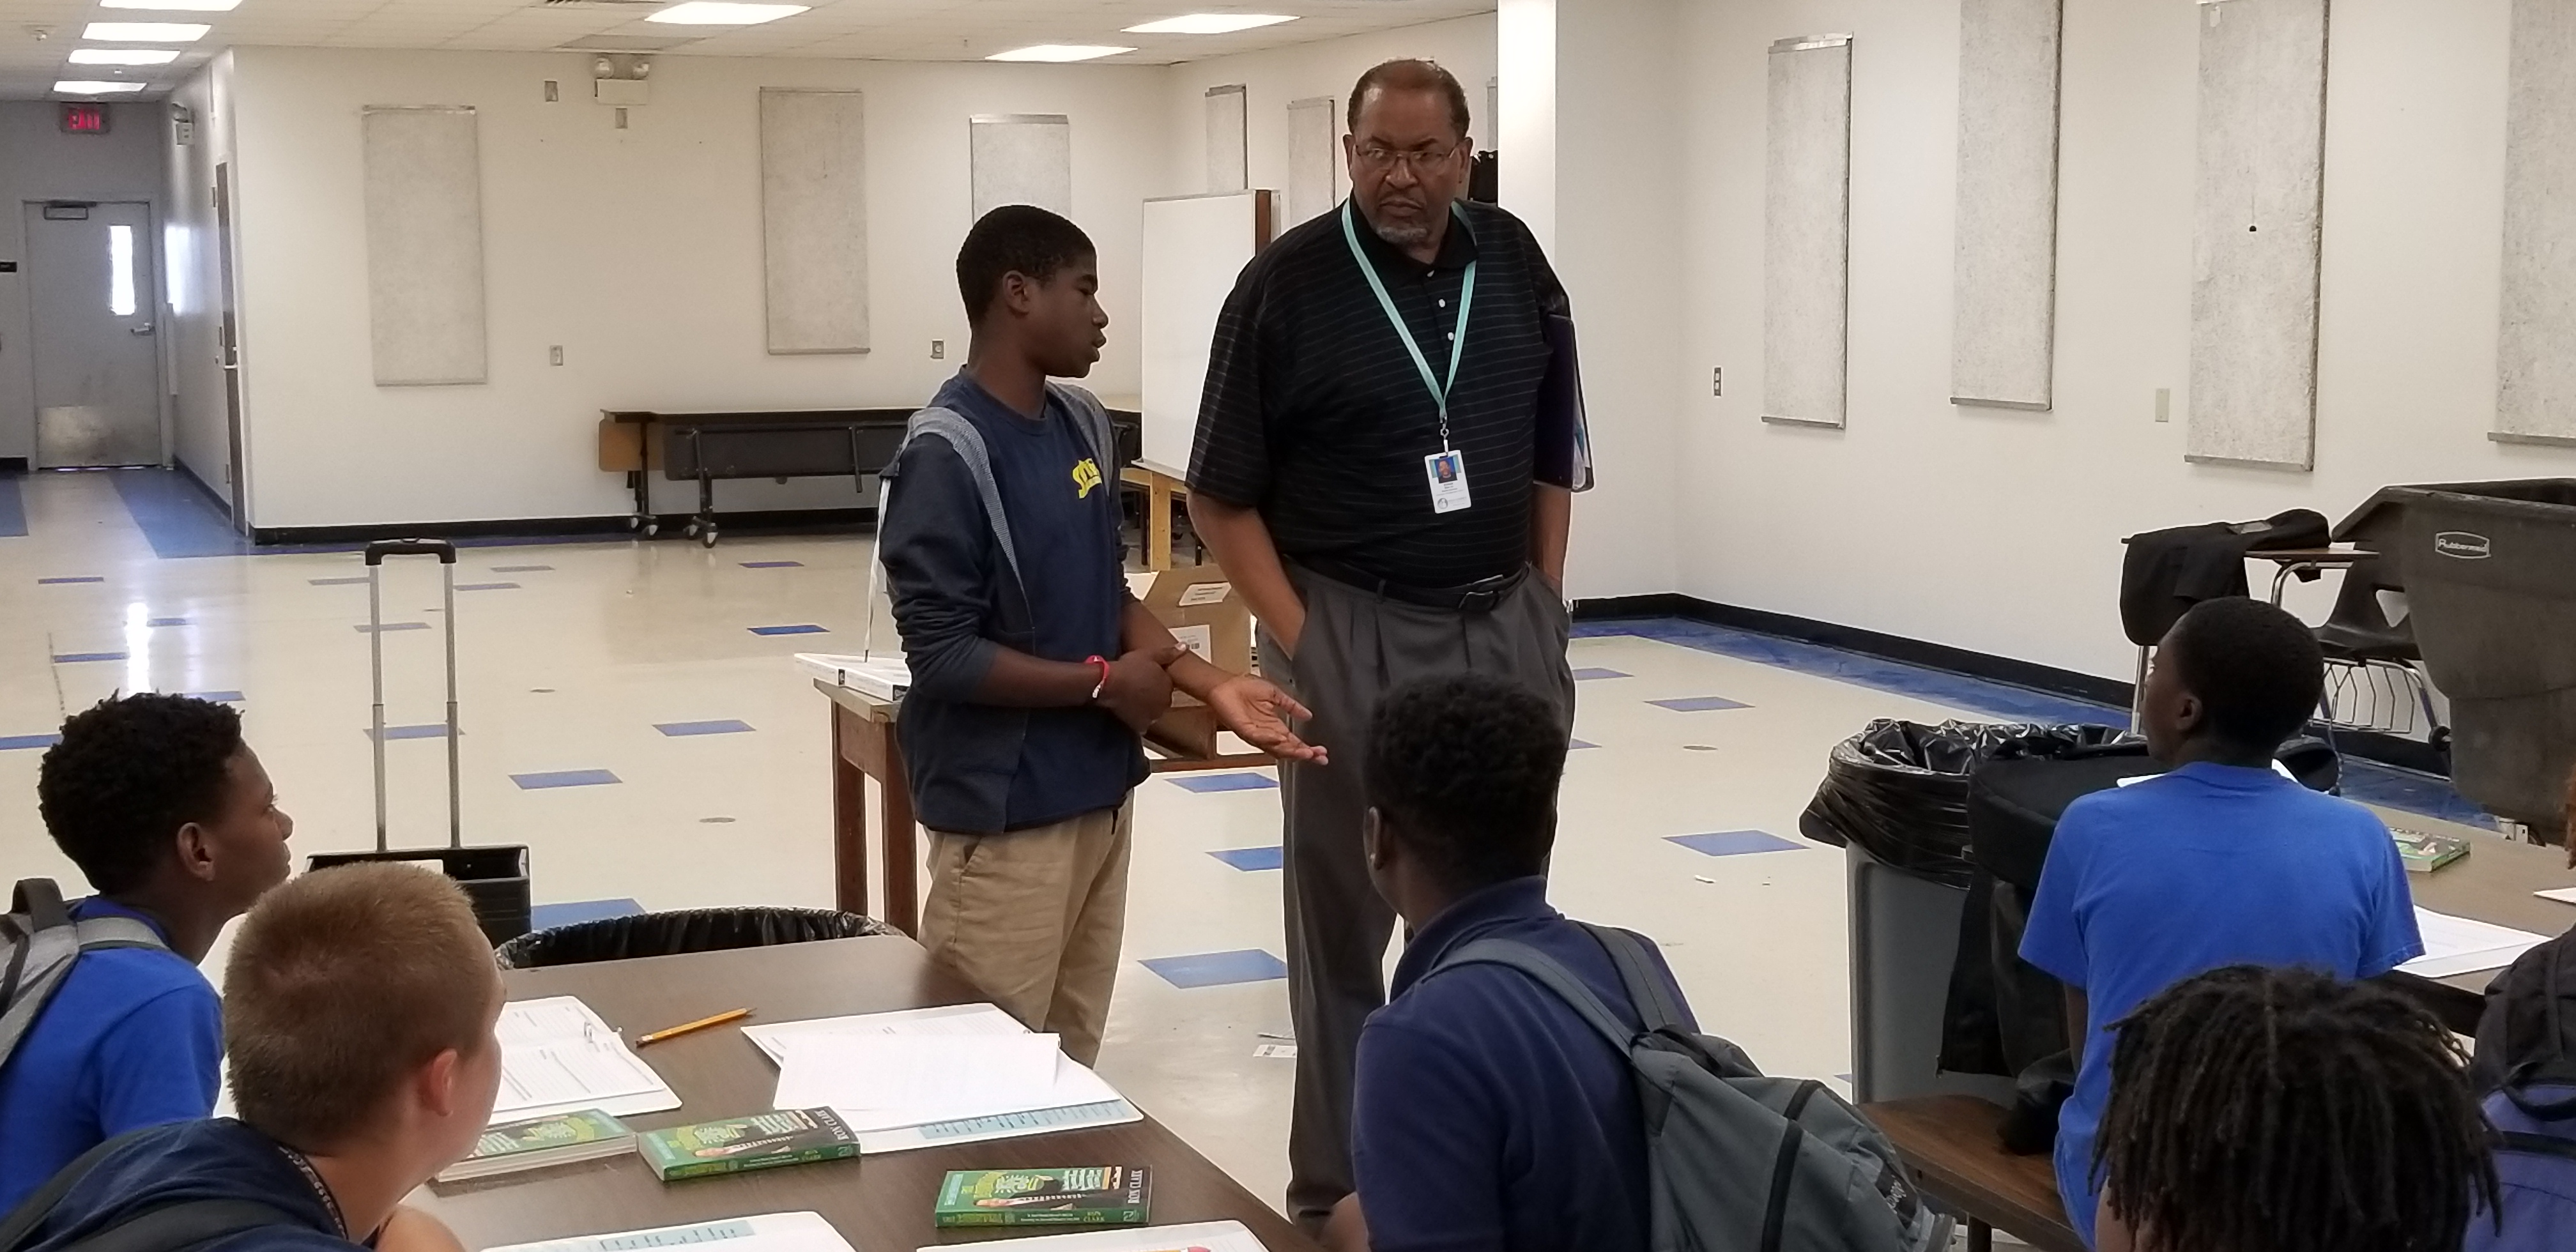 Ernest Joe working with students at Lake Gibson Middle